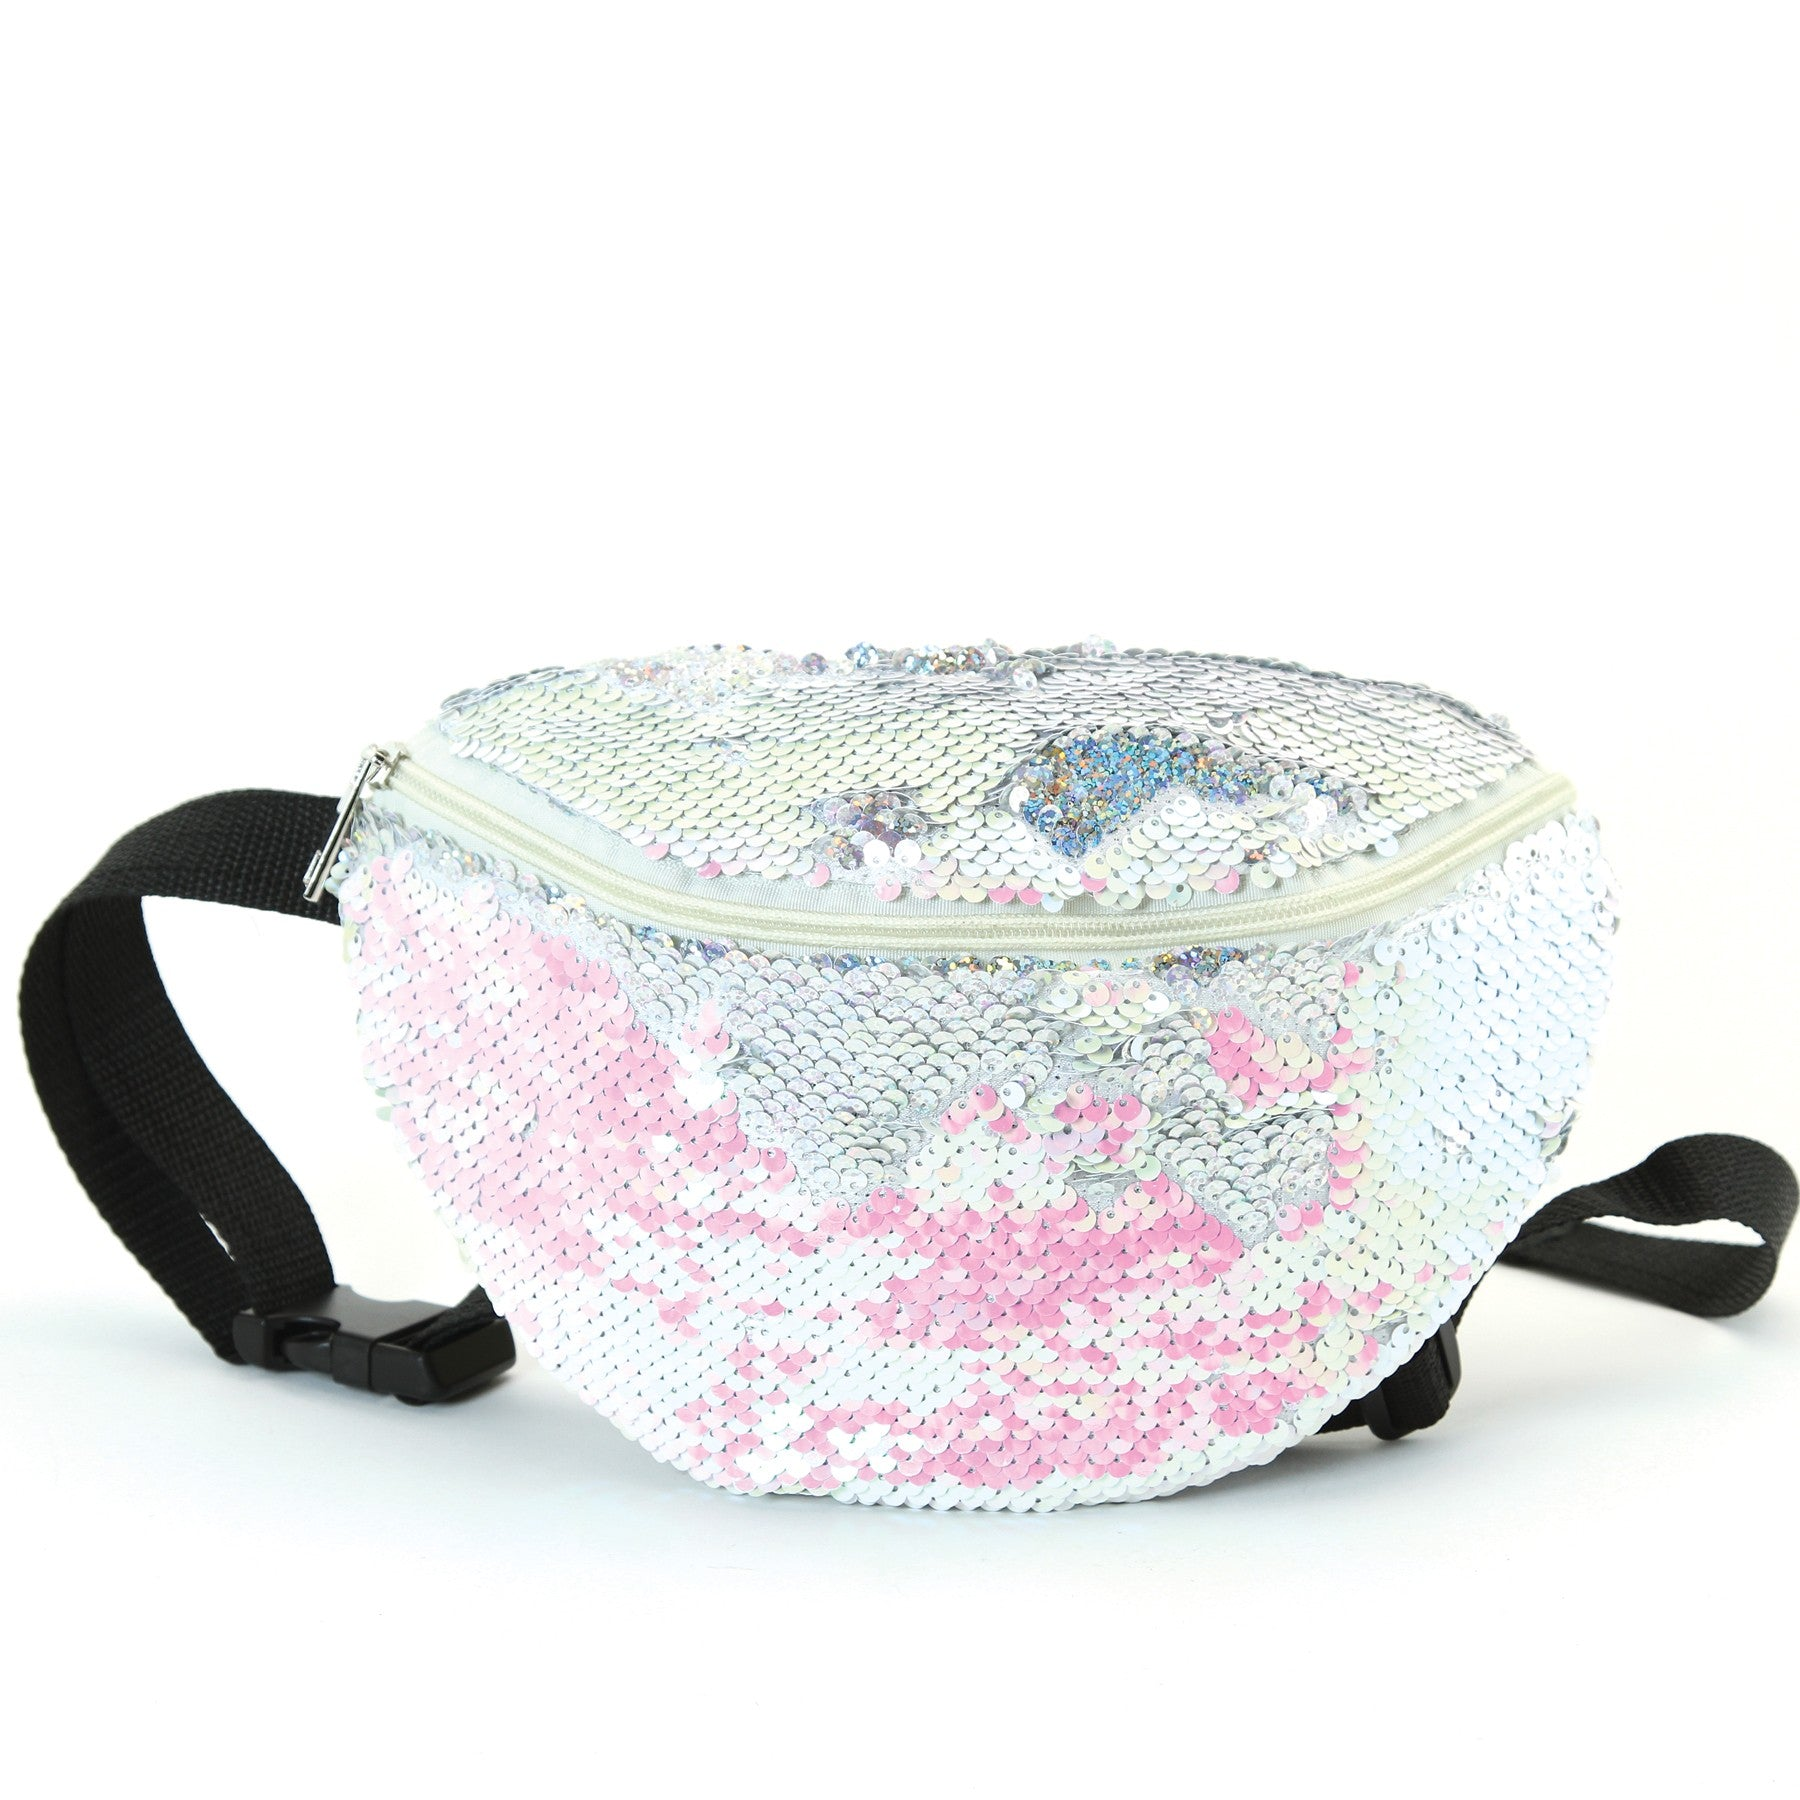 Fashionable Sequinned Fanny Packs in Mermaid Style - Bizzy Lizzy